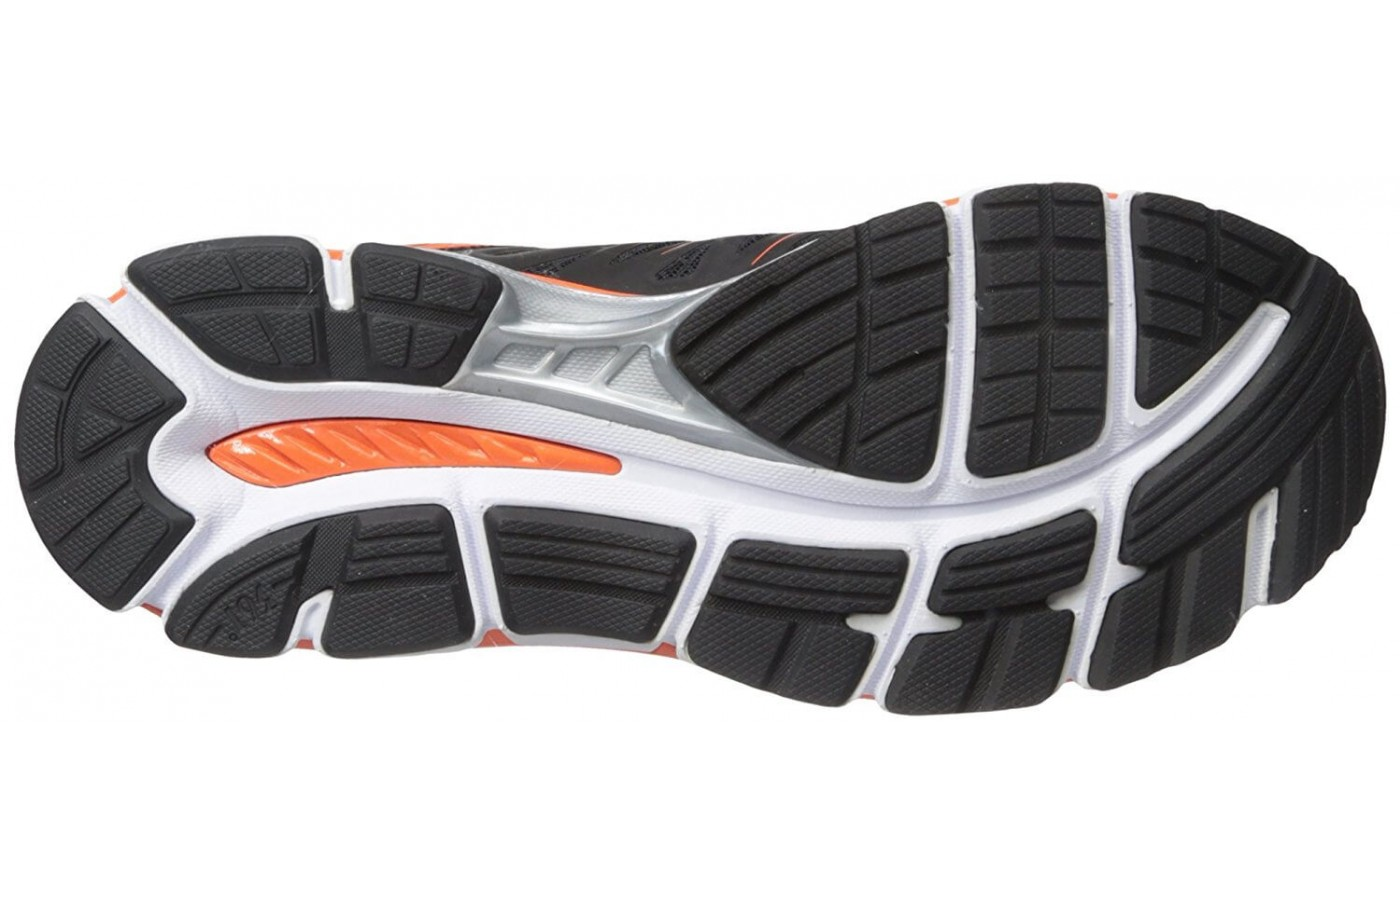 The outsole features a combination of blown and high abrasion rubber.